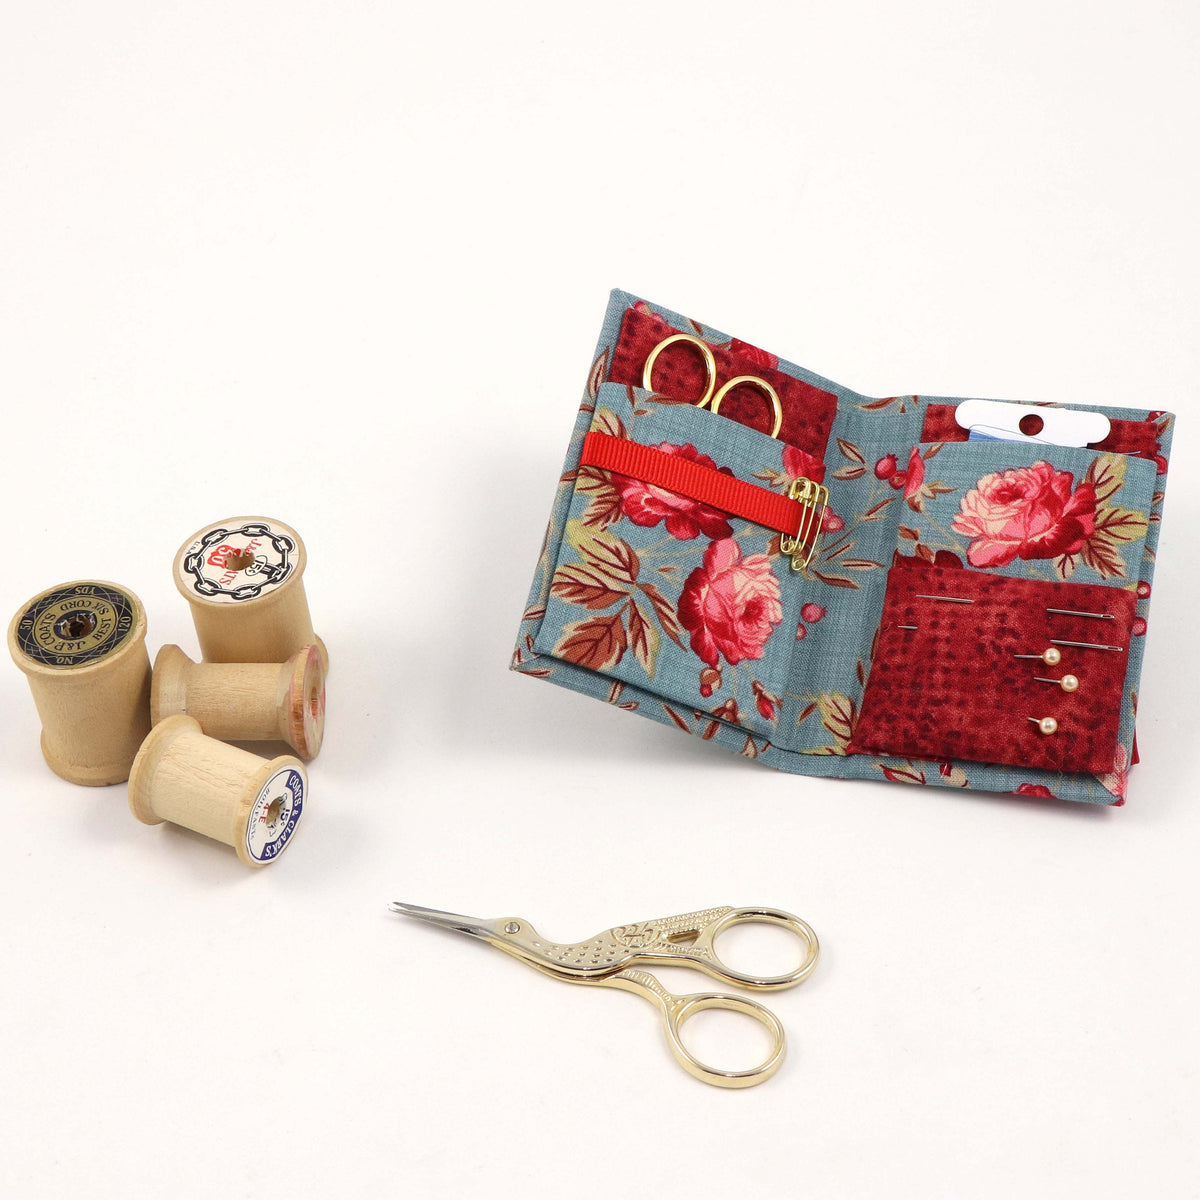 DIY mini fabric sewing kit, pack with 2, cartonnage DIY kit 106, free online instructions - Colorway Arts